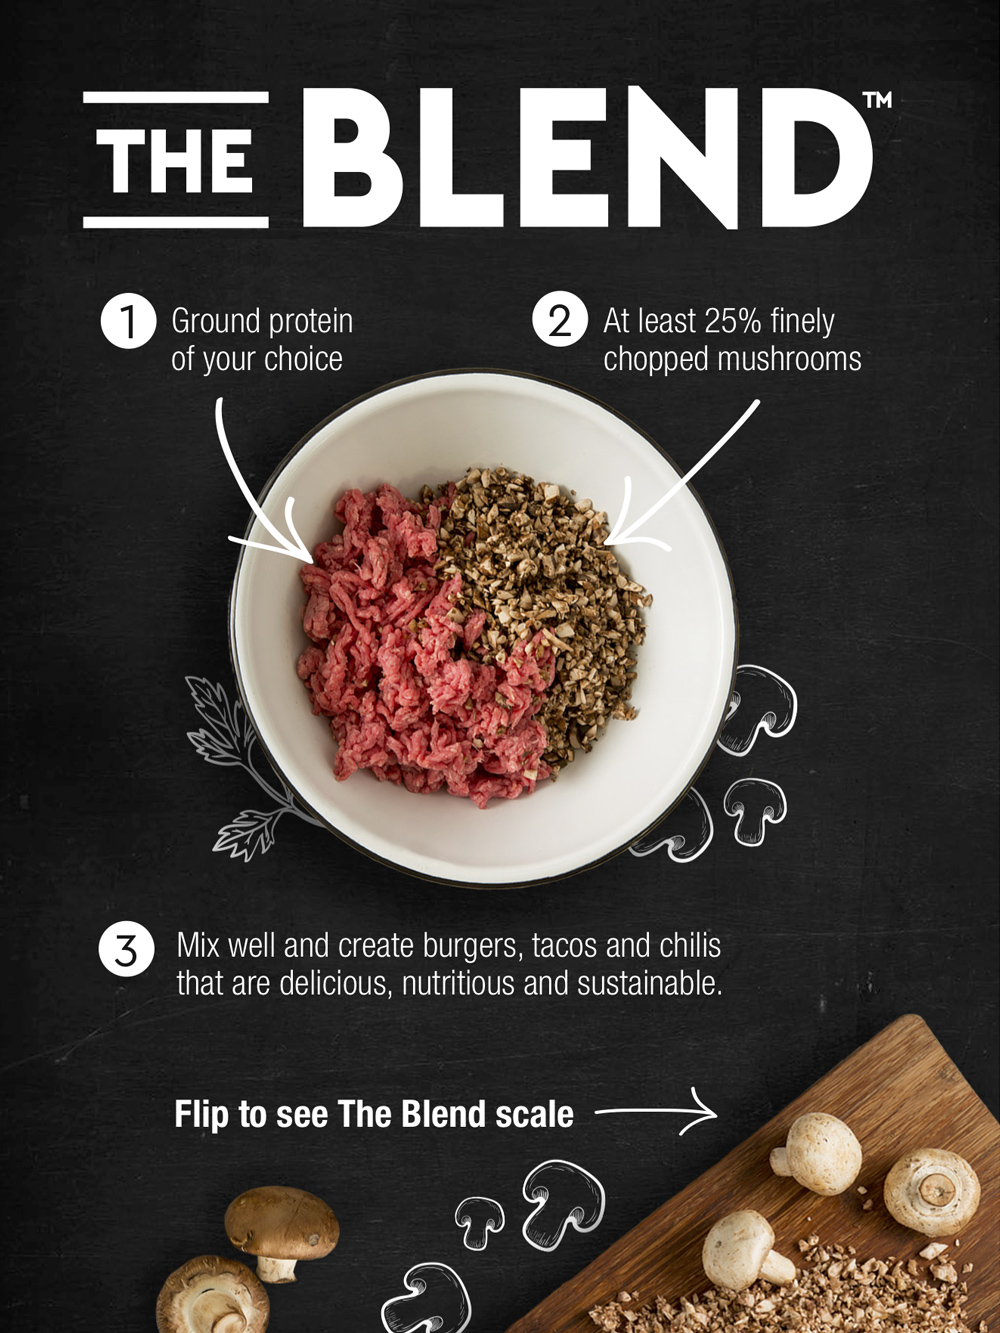 the blend poster